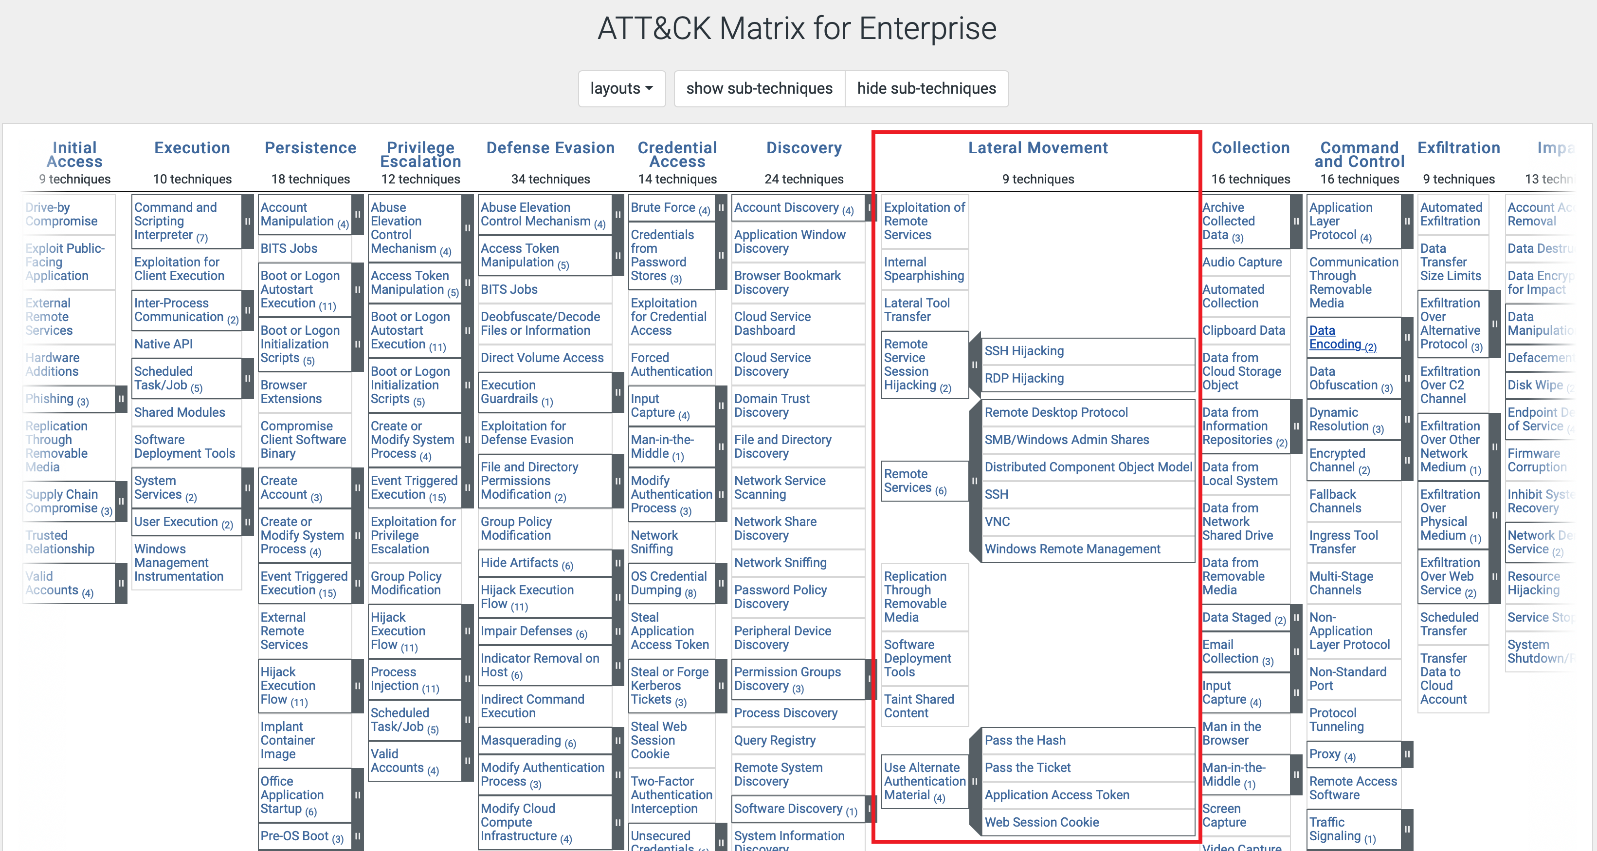 ATT&CK Matrix for Enterprise